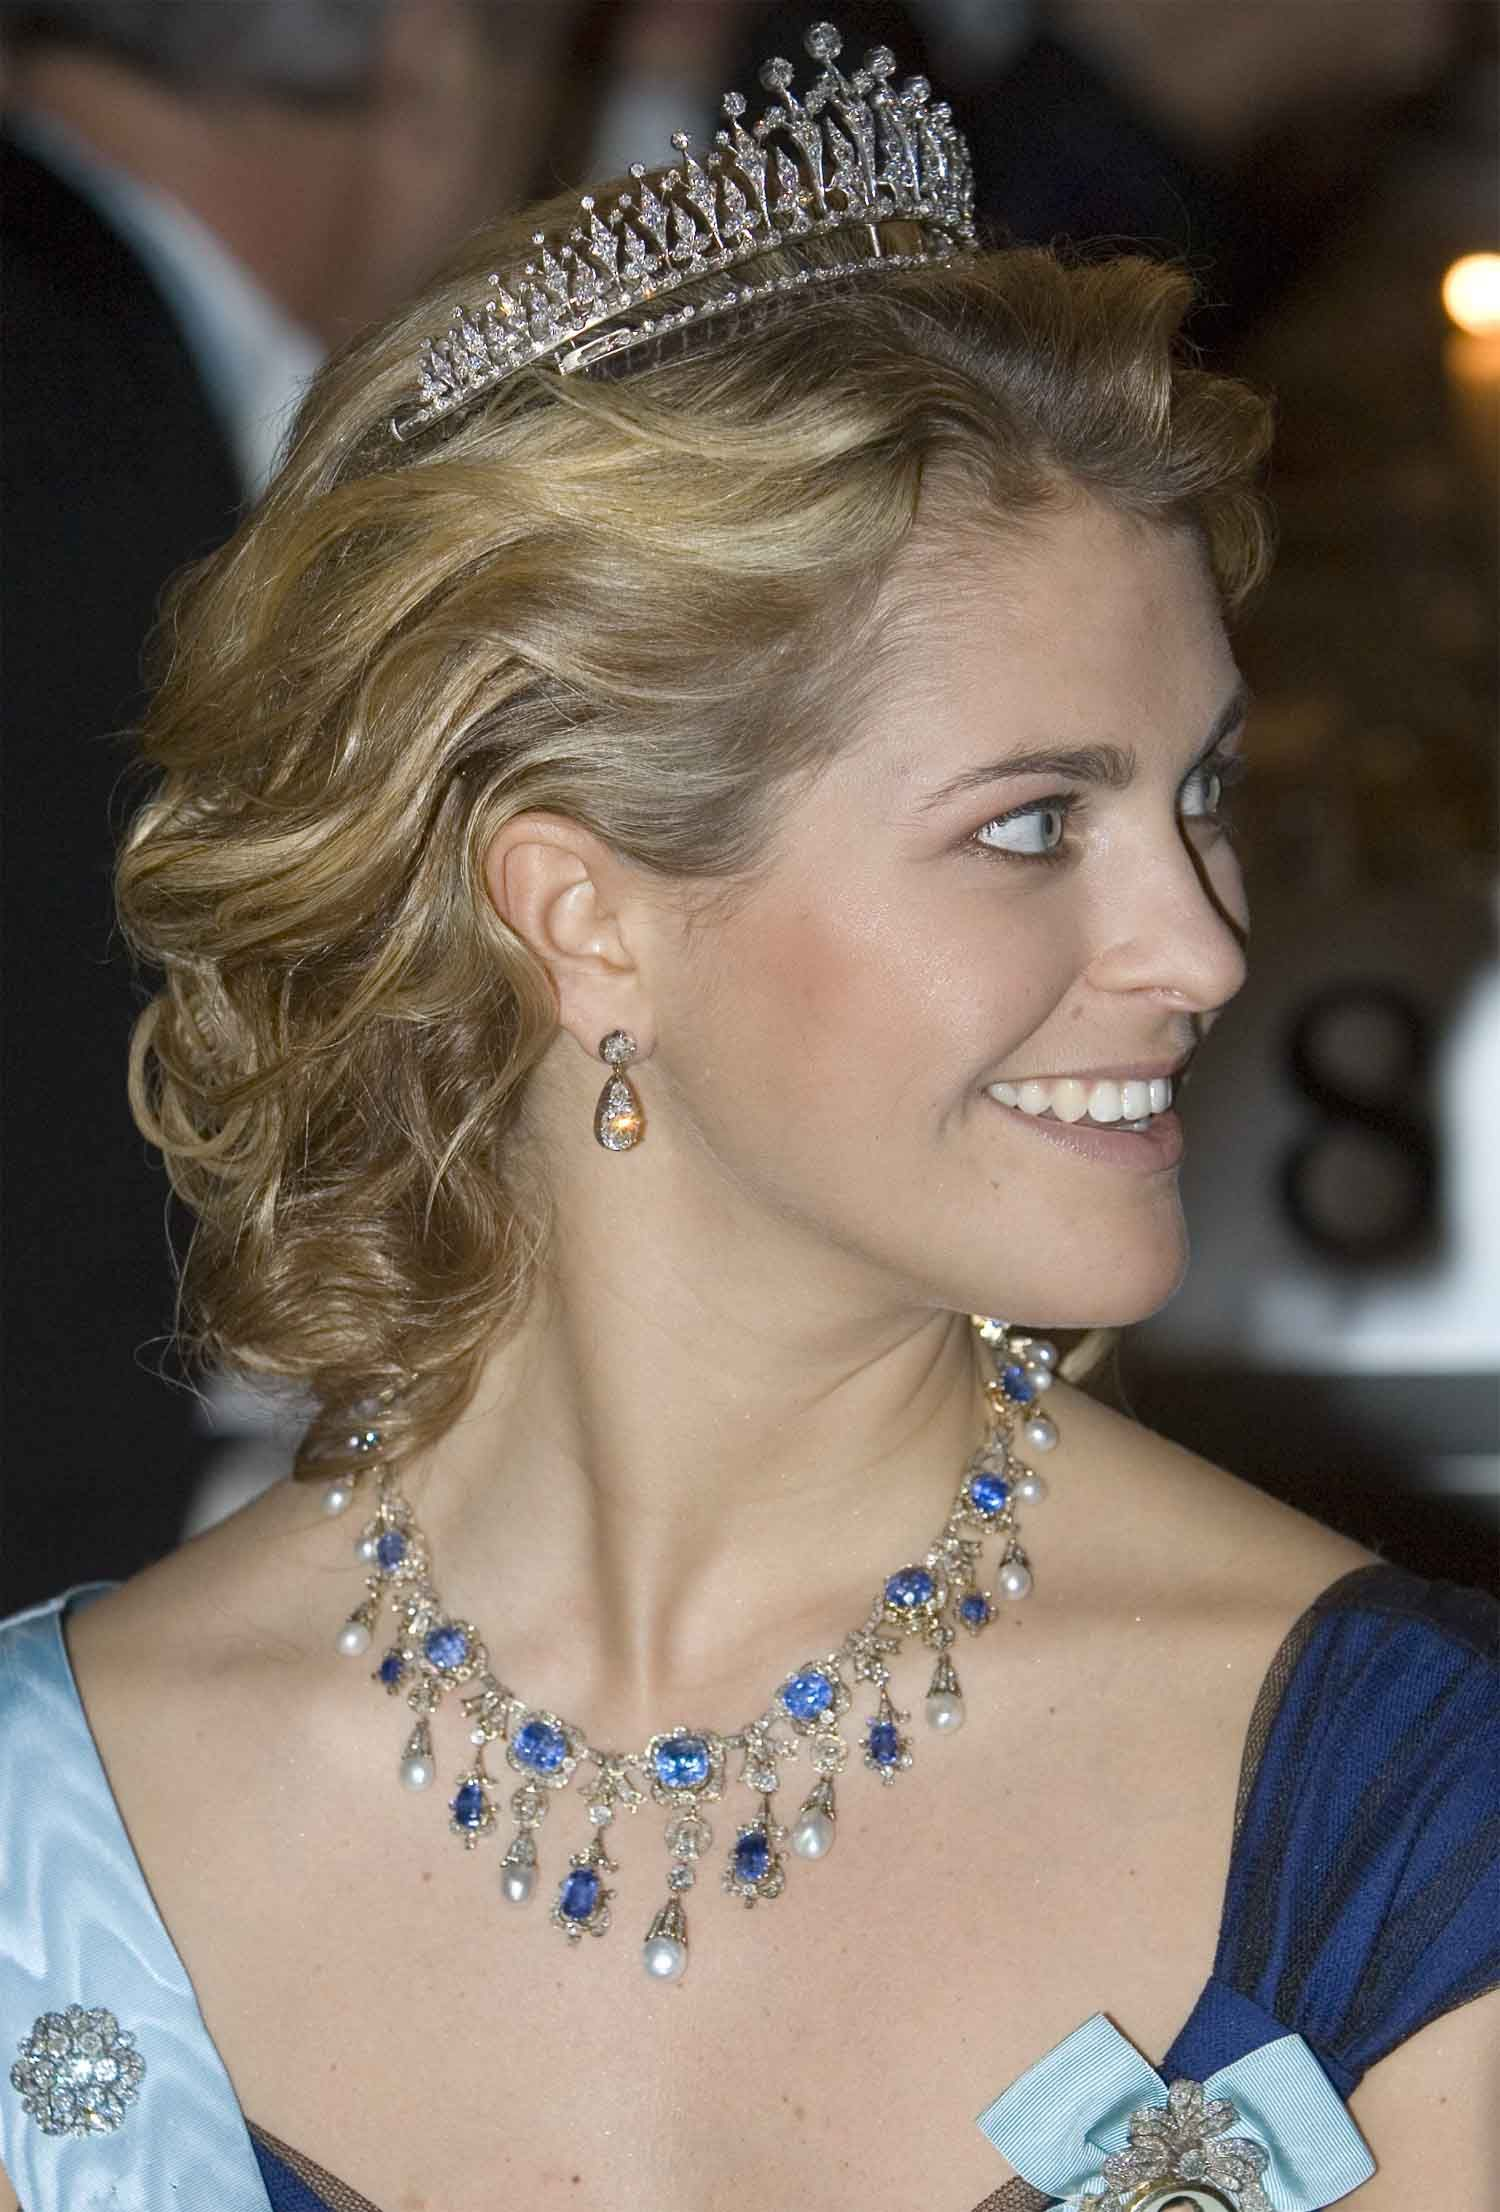 HRH Princess Madeleine | The Swedish Royal Family | Pinterest